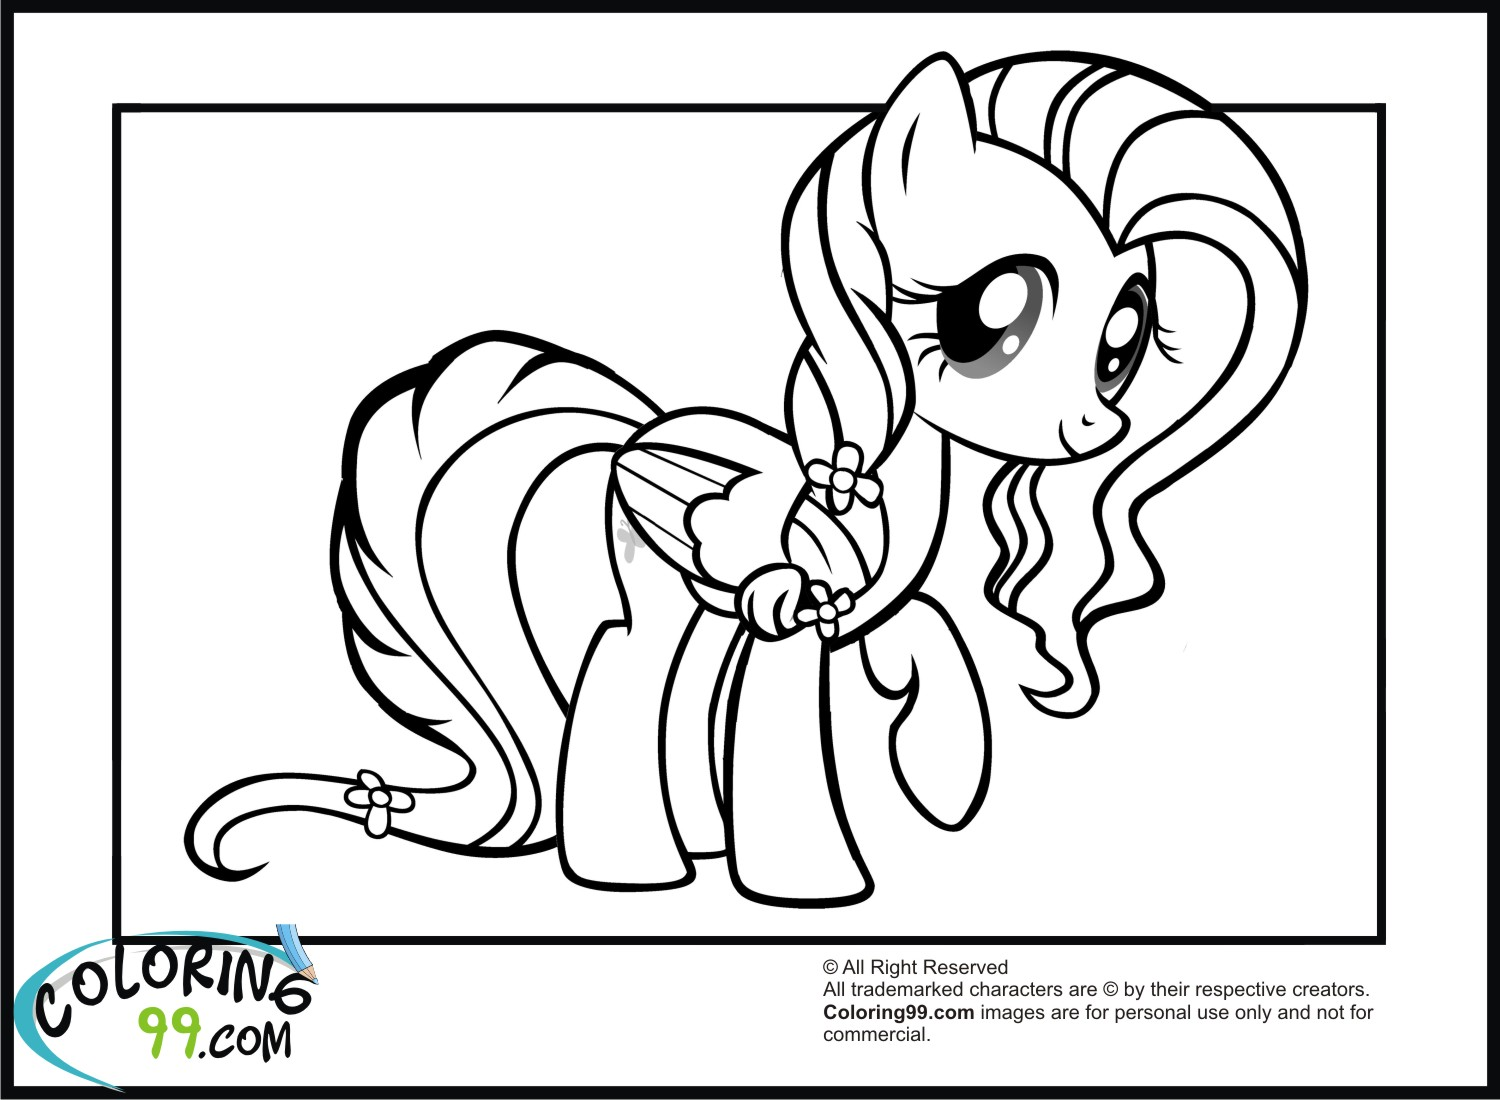 My little pony fluttershy coloring pages team colors for My little pony fluttershy coloring pages